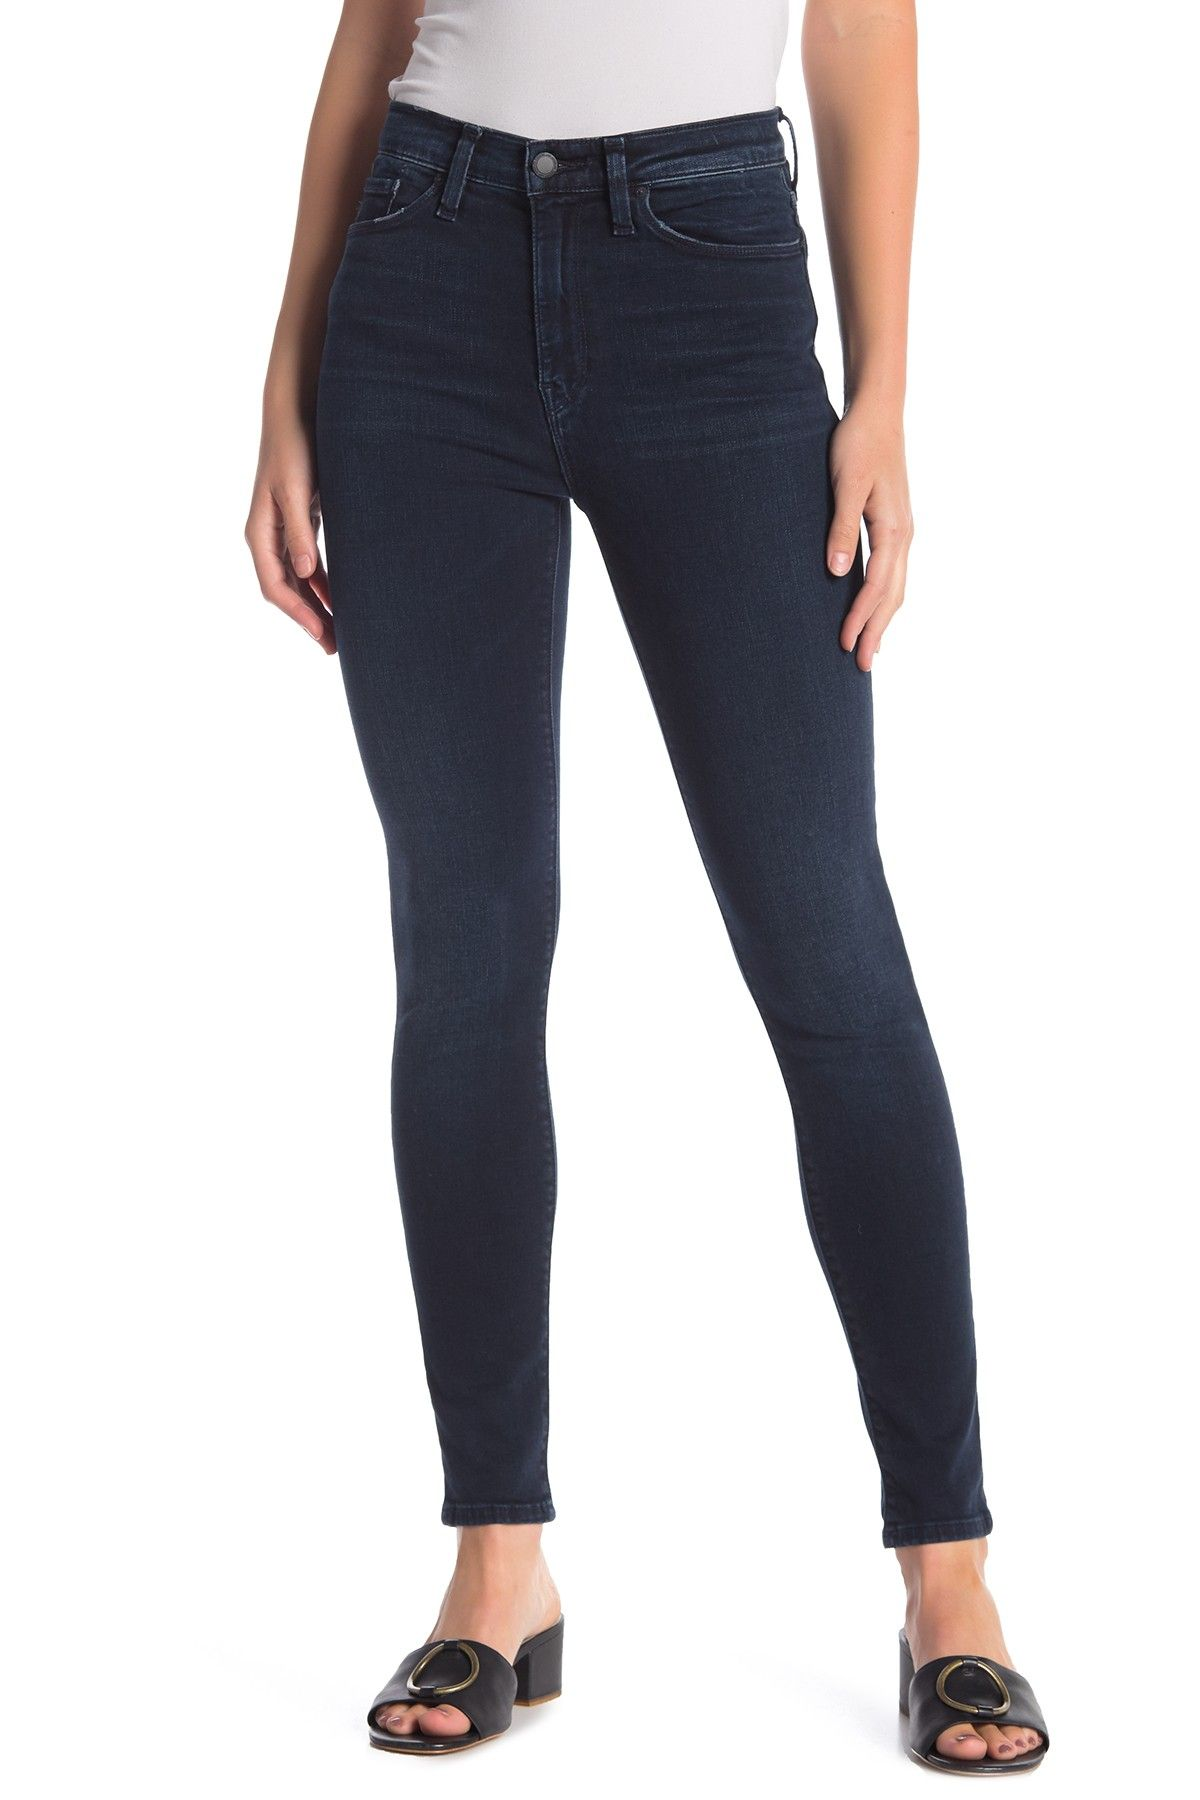 041f217156d HUDSON Jeans - Barbara High Waist Super Skinny Jeans is now 54% off. Free  Shipping on orders over $100.